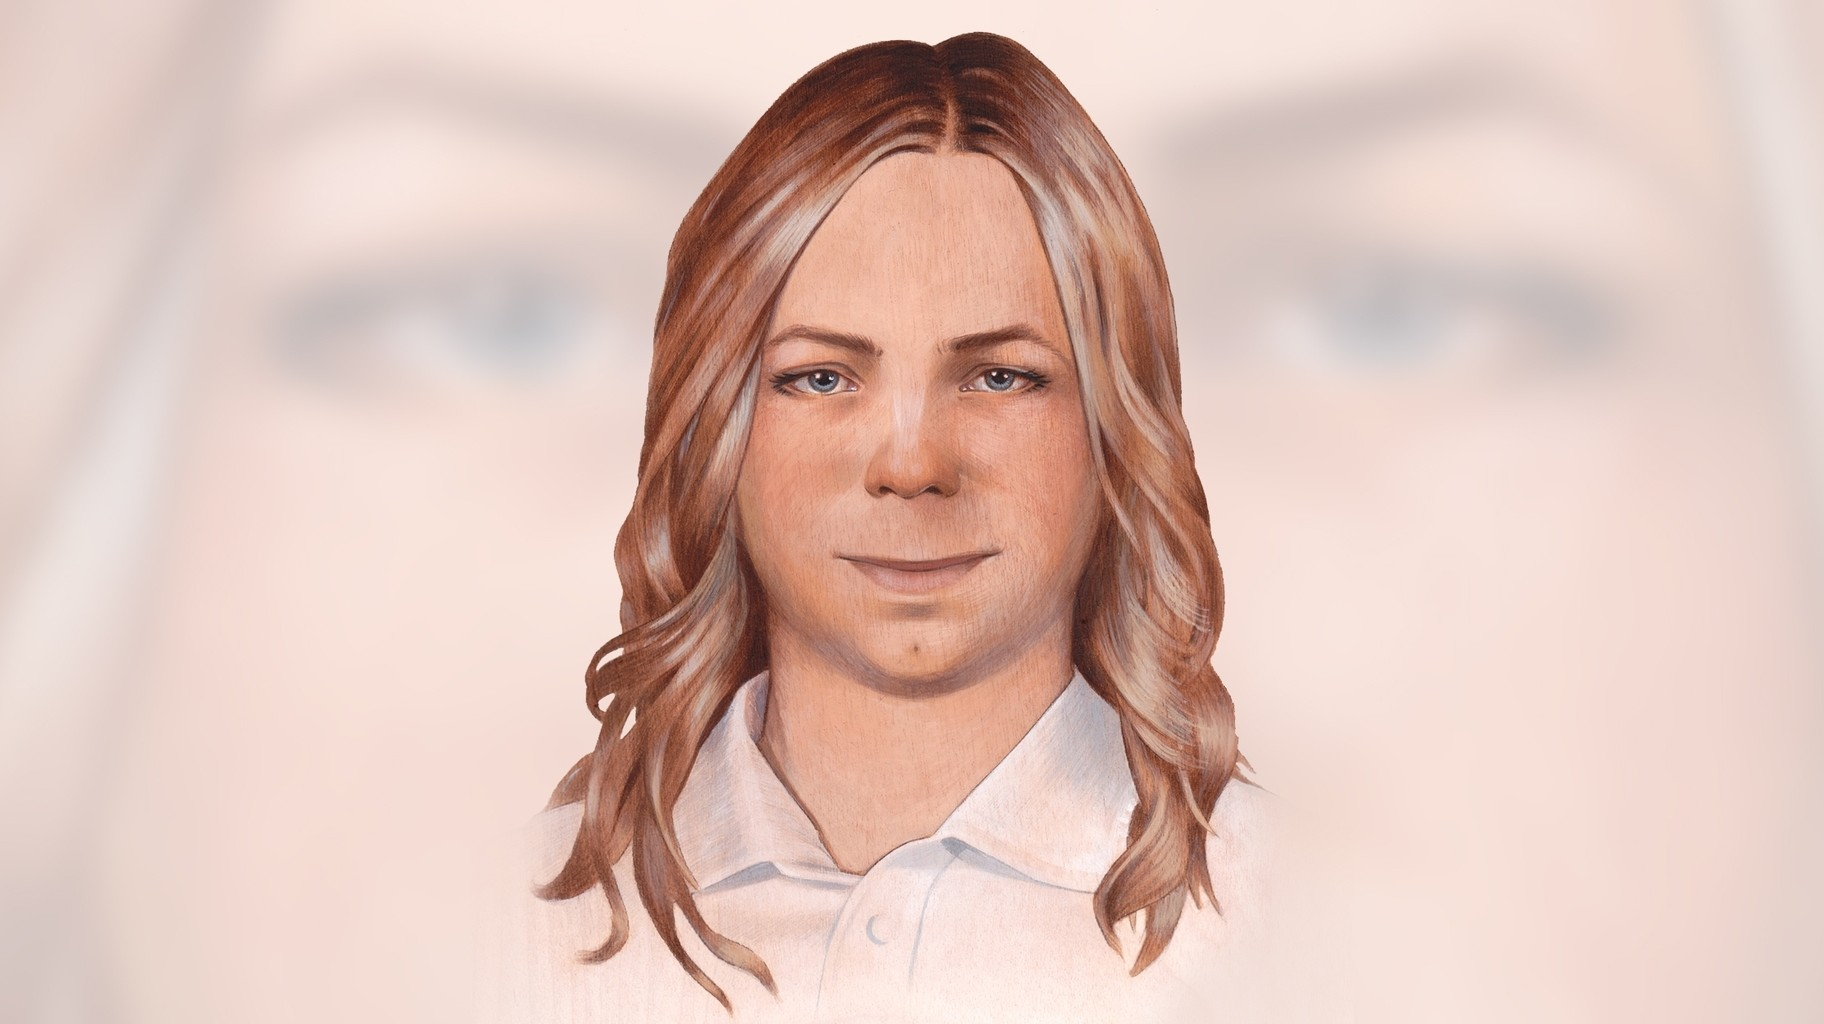 the artist who painted chelsea manning